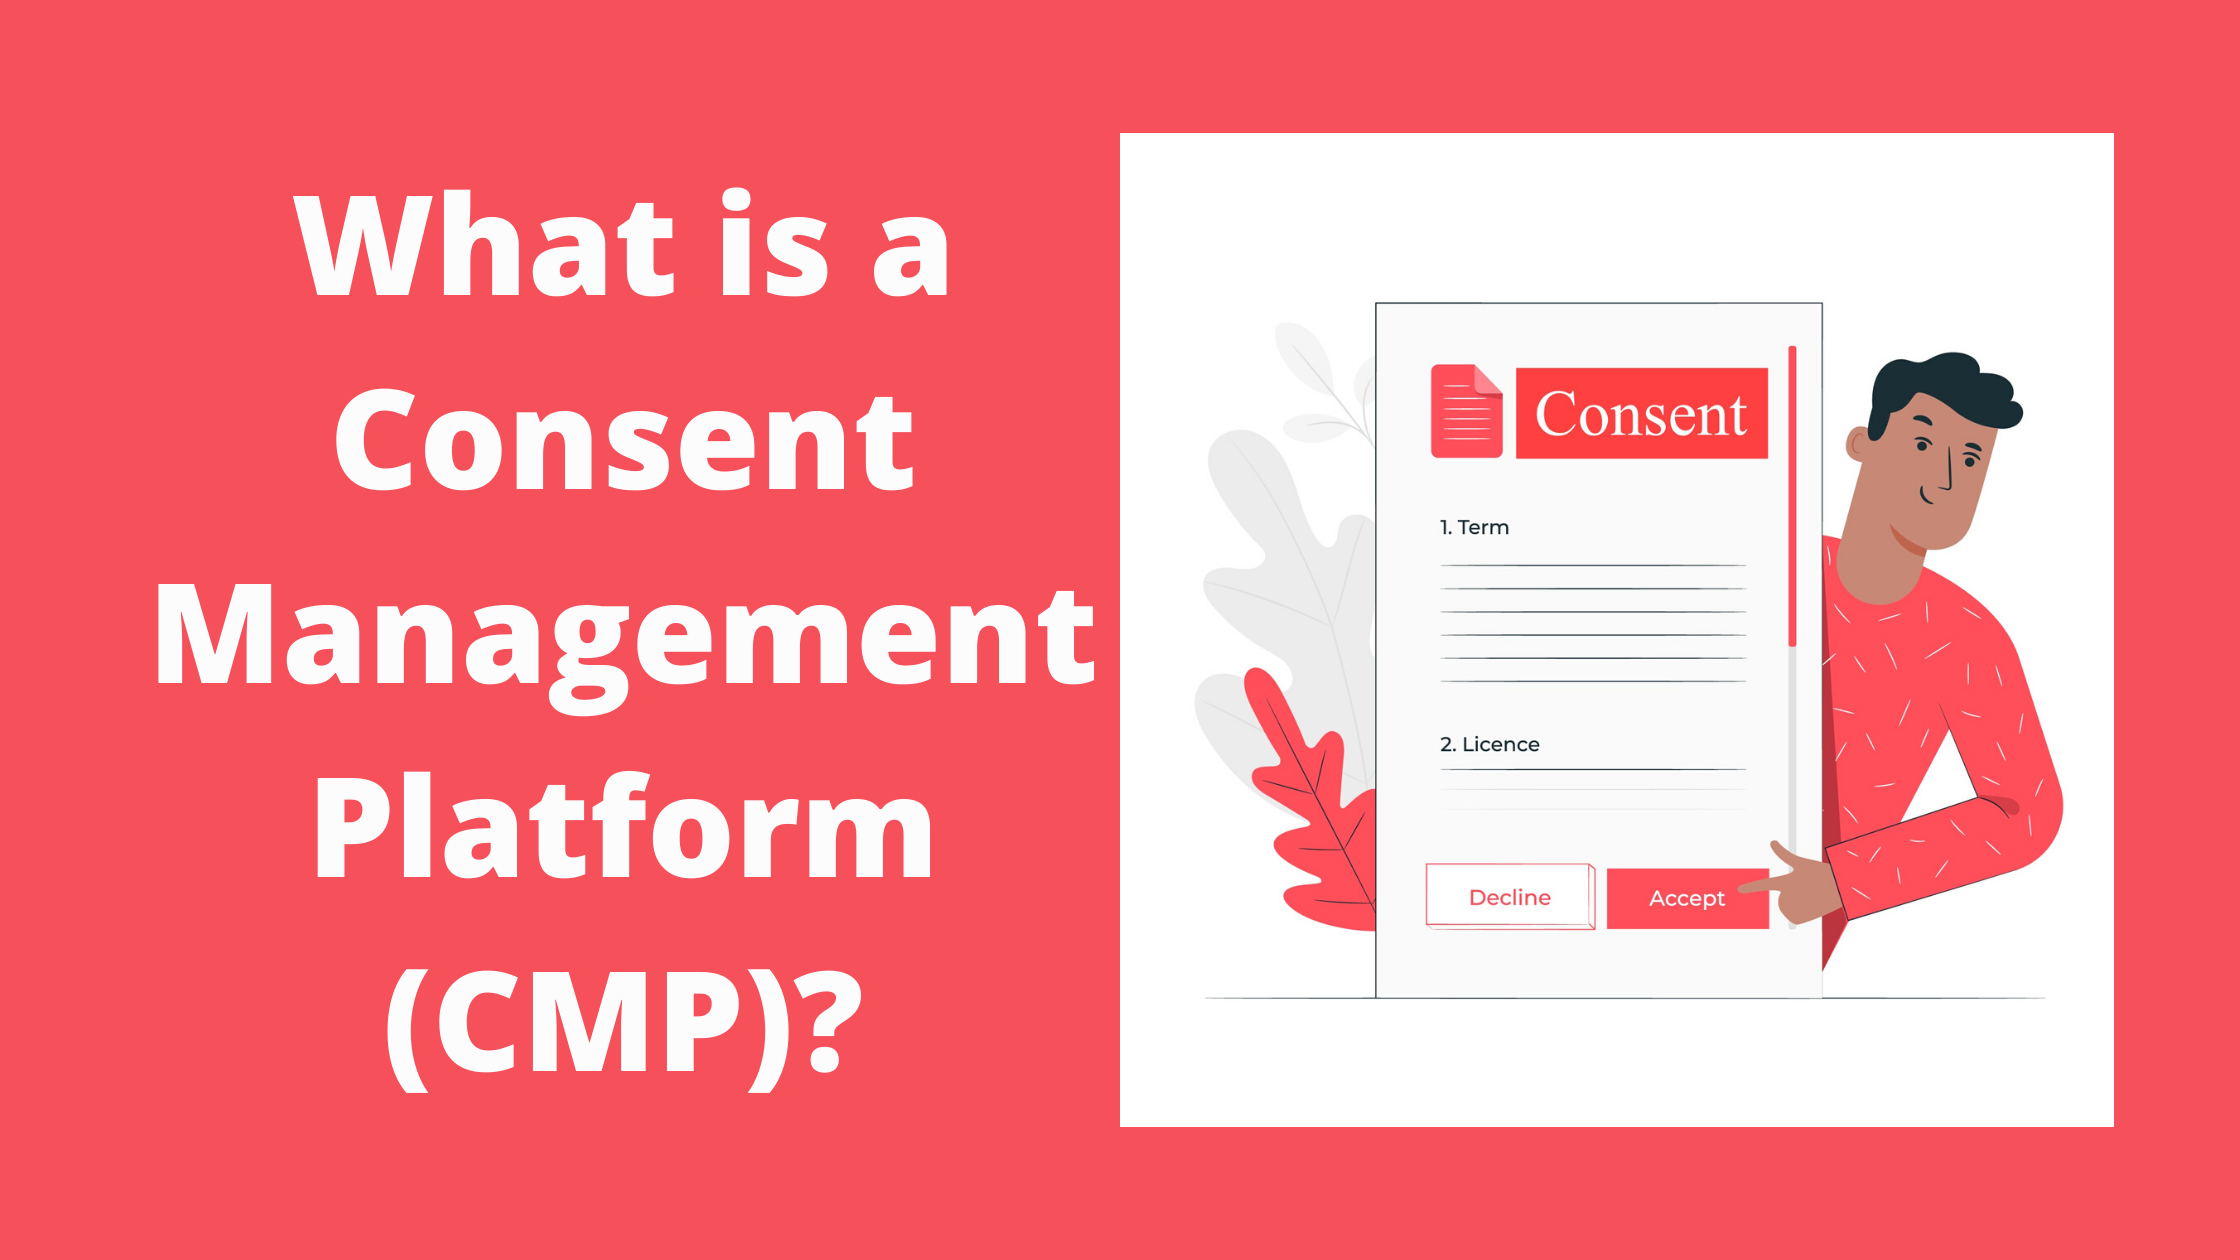 Consent Management Platform (CMP)